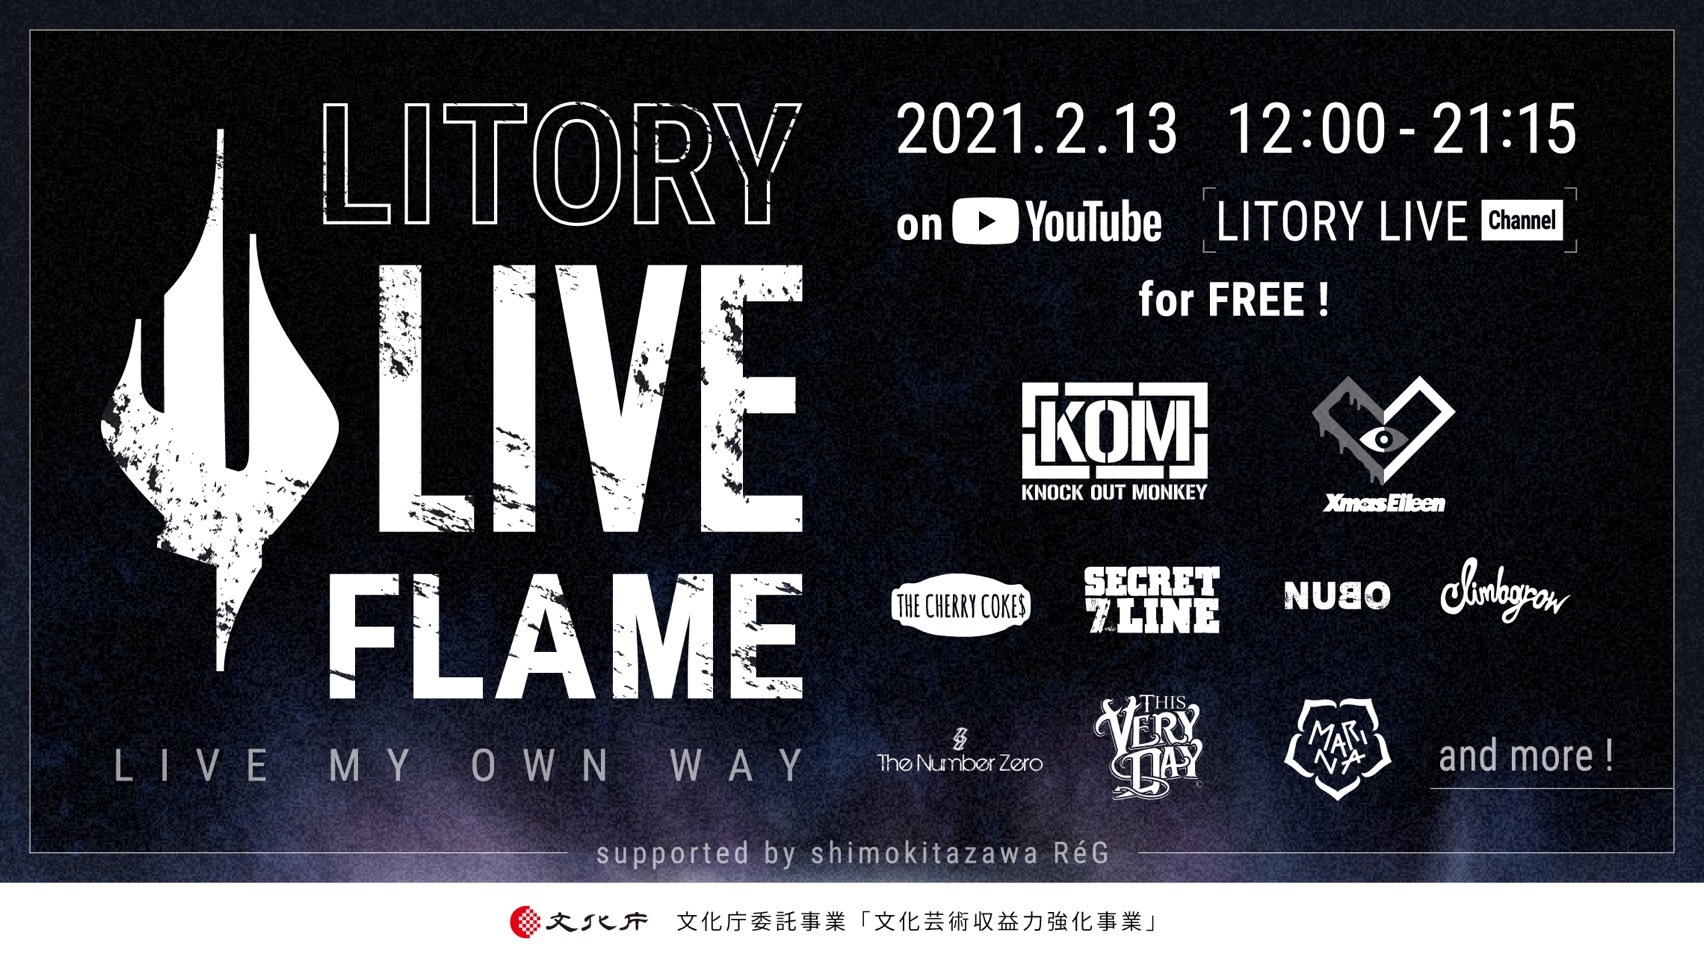 LITORY LIVE FLAME 〜Live my own way〜